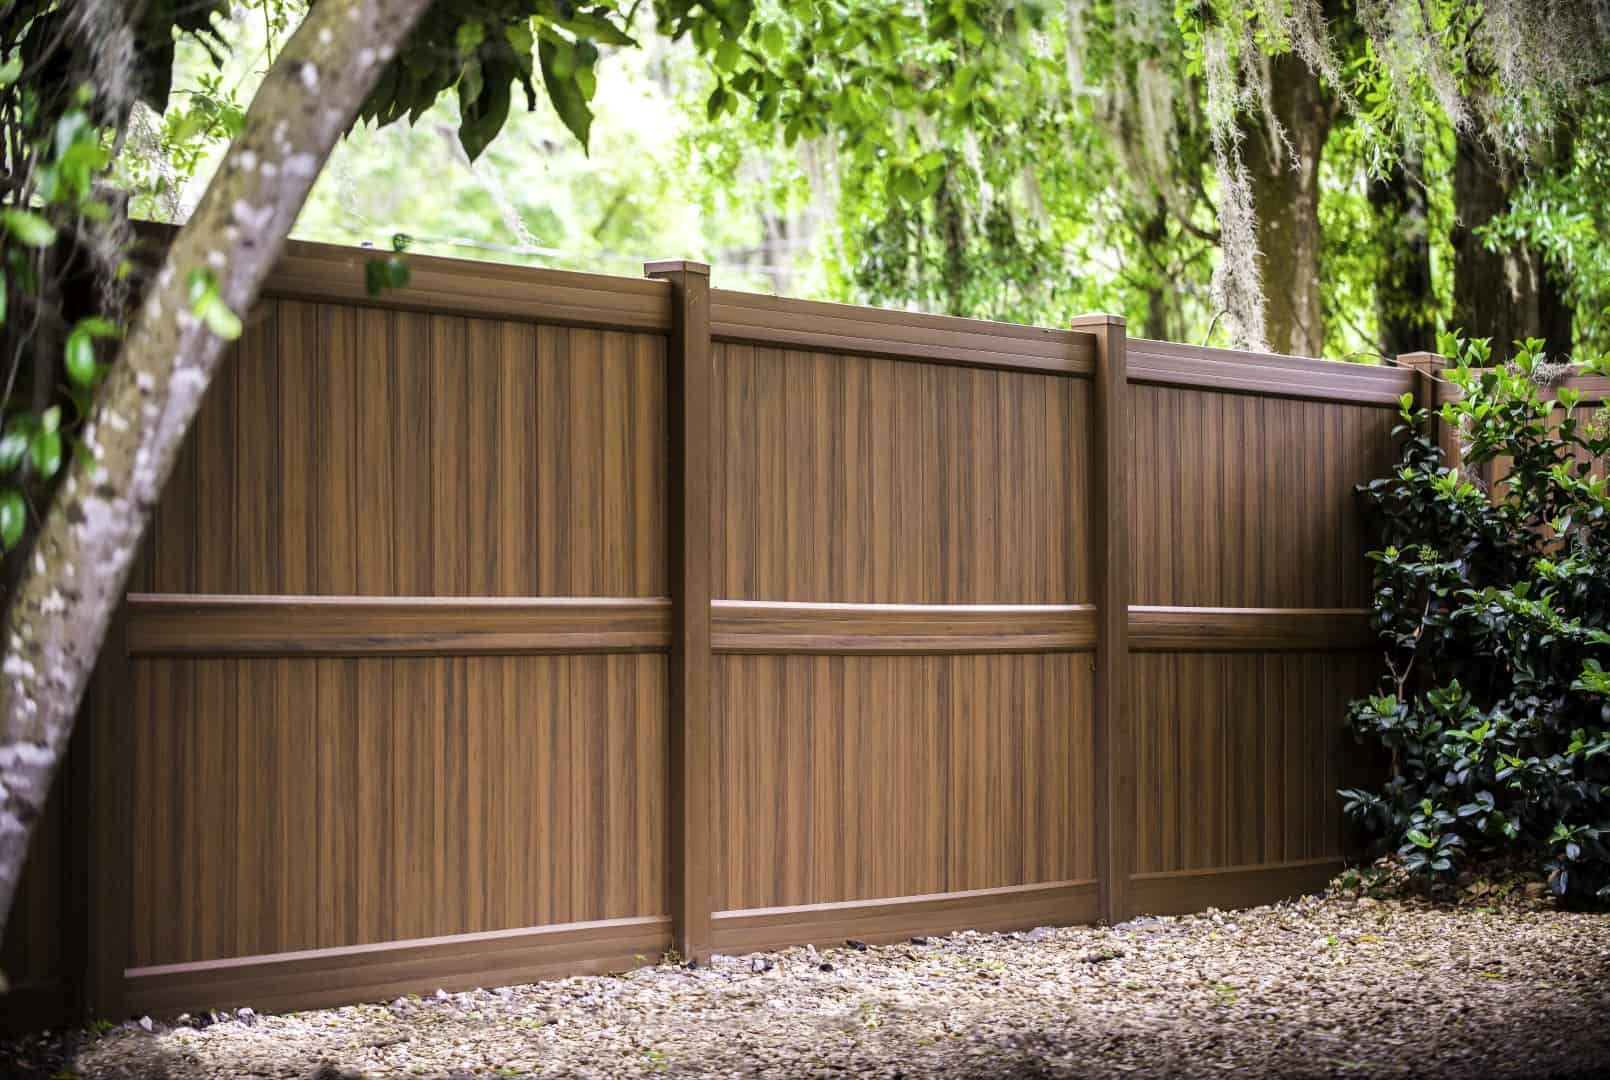 Things to Consider when Hiring a Fencing Company - SafeThinker